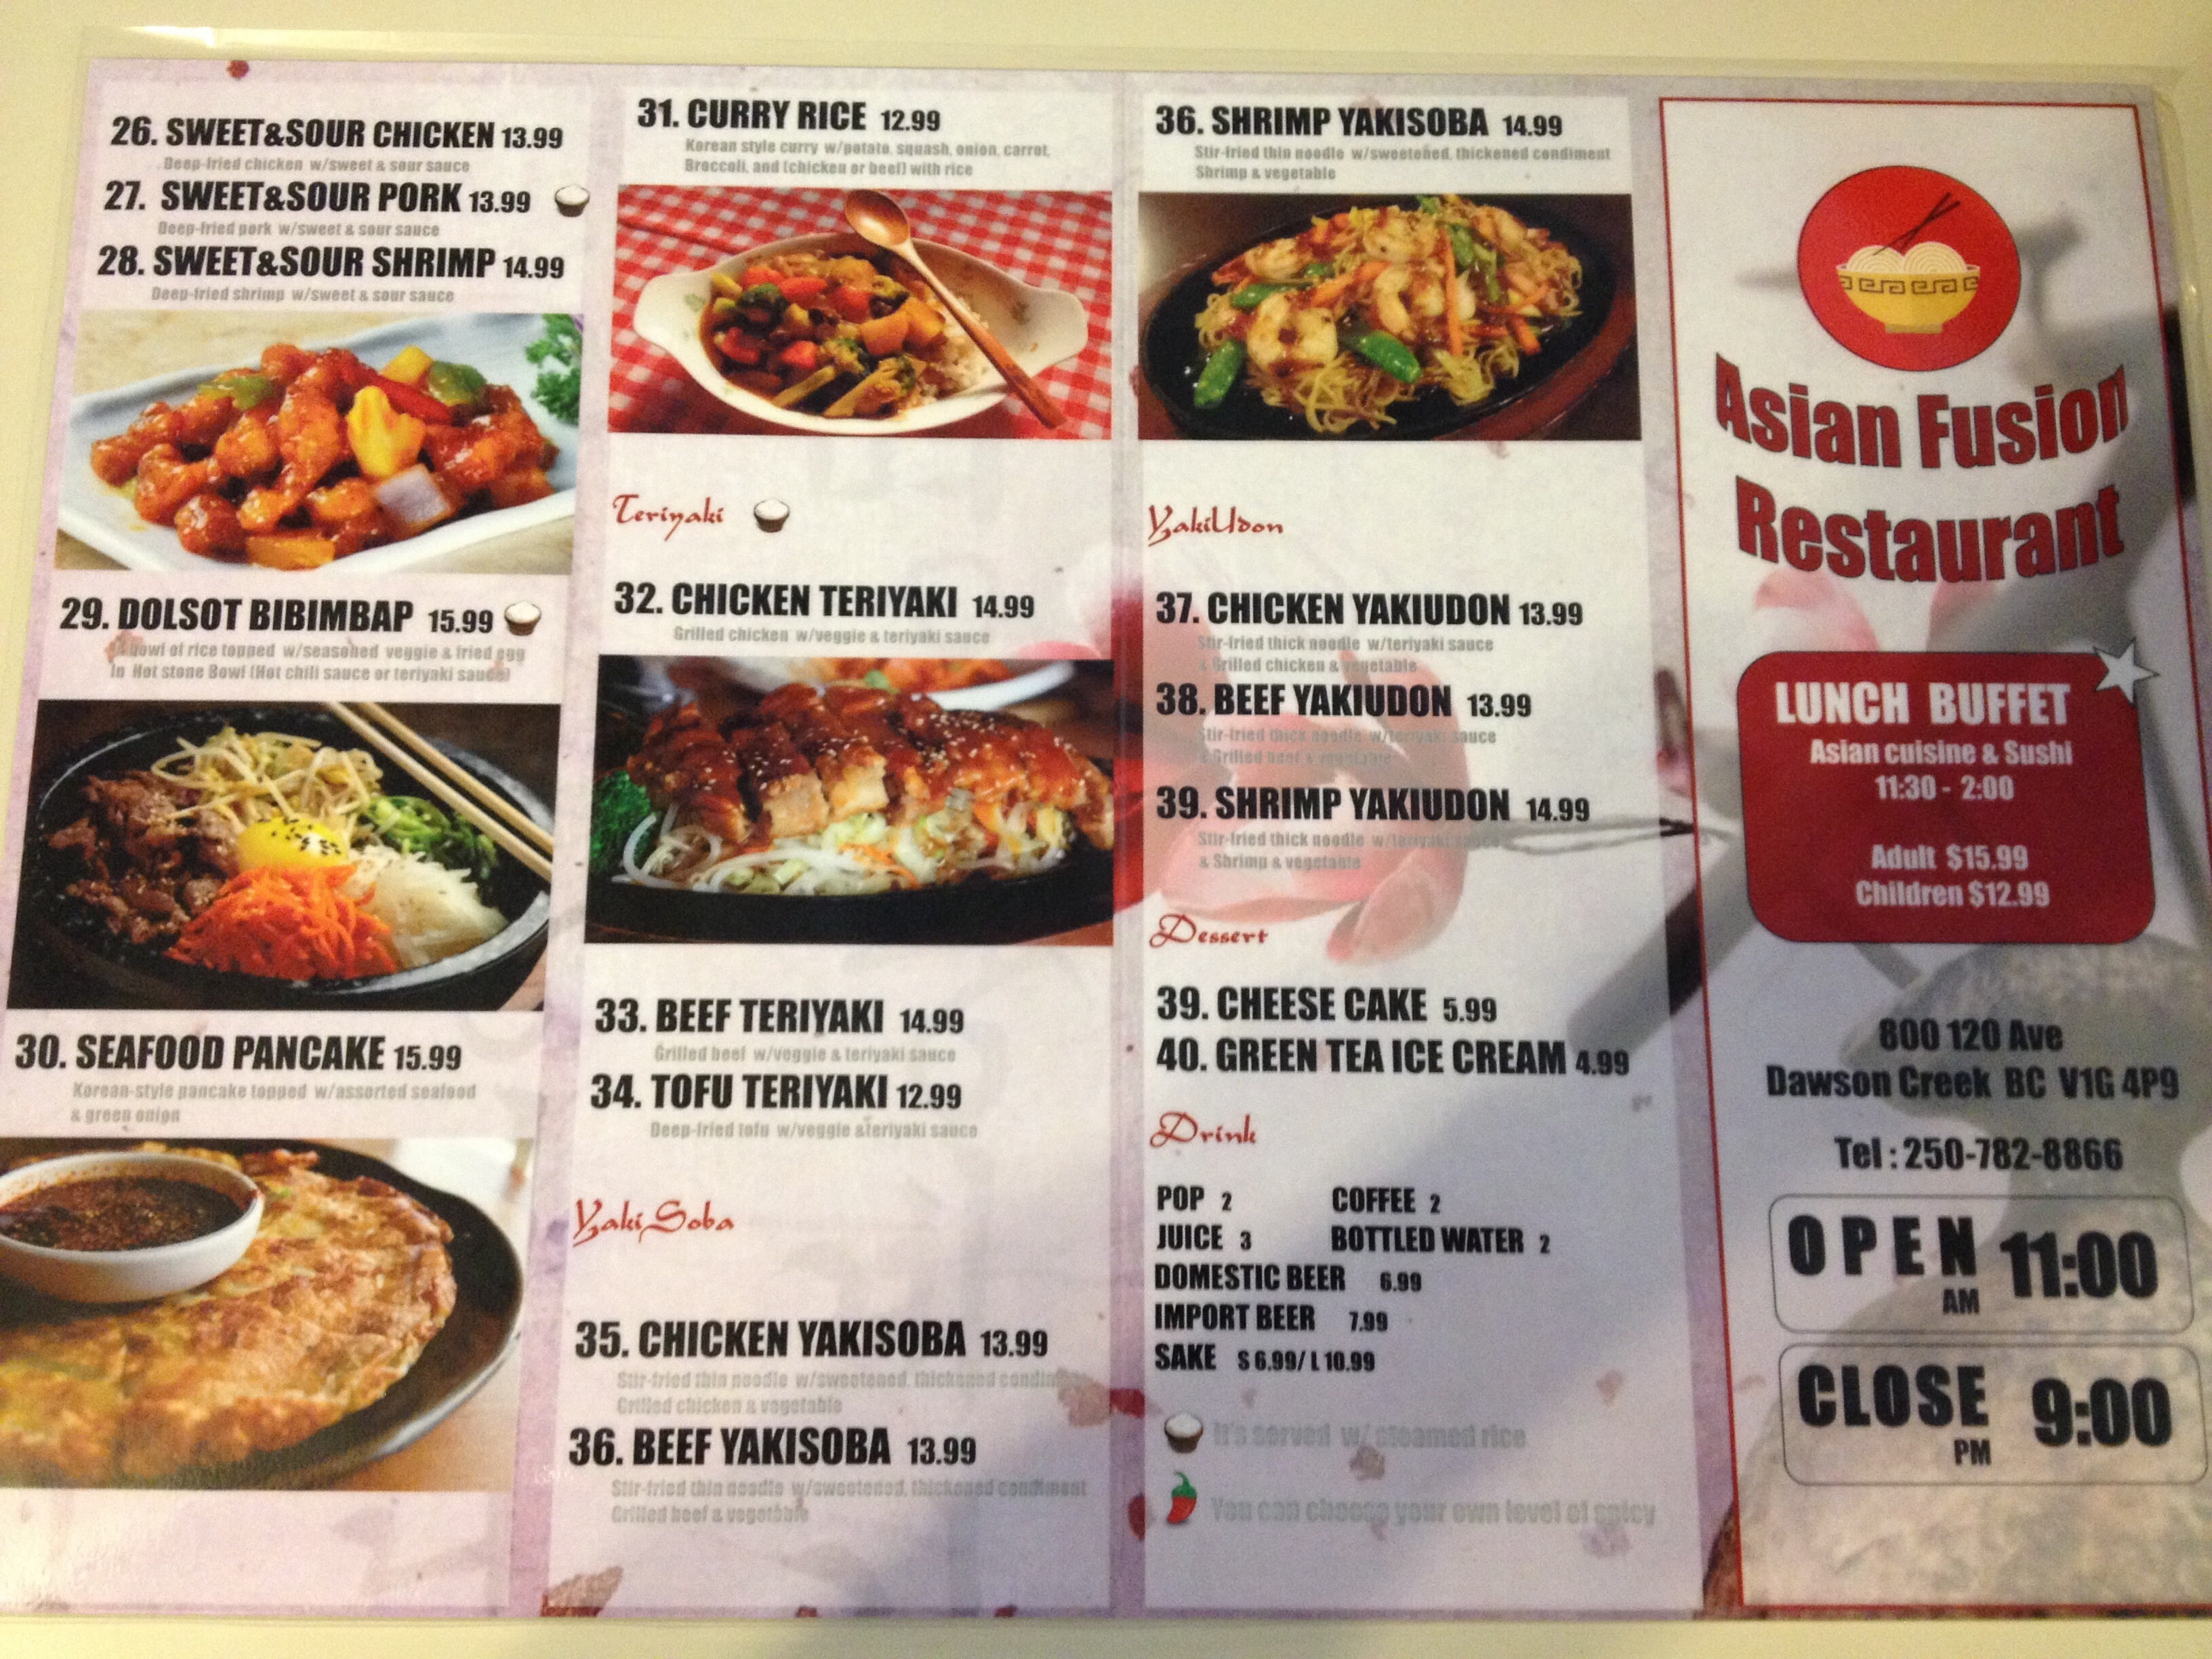 Asian fusion restaurant menu menu for asian fusion for Asian fusion cuisine restaurants